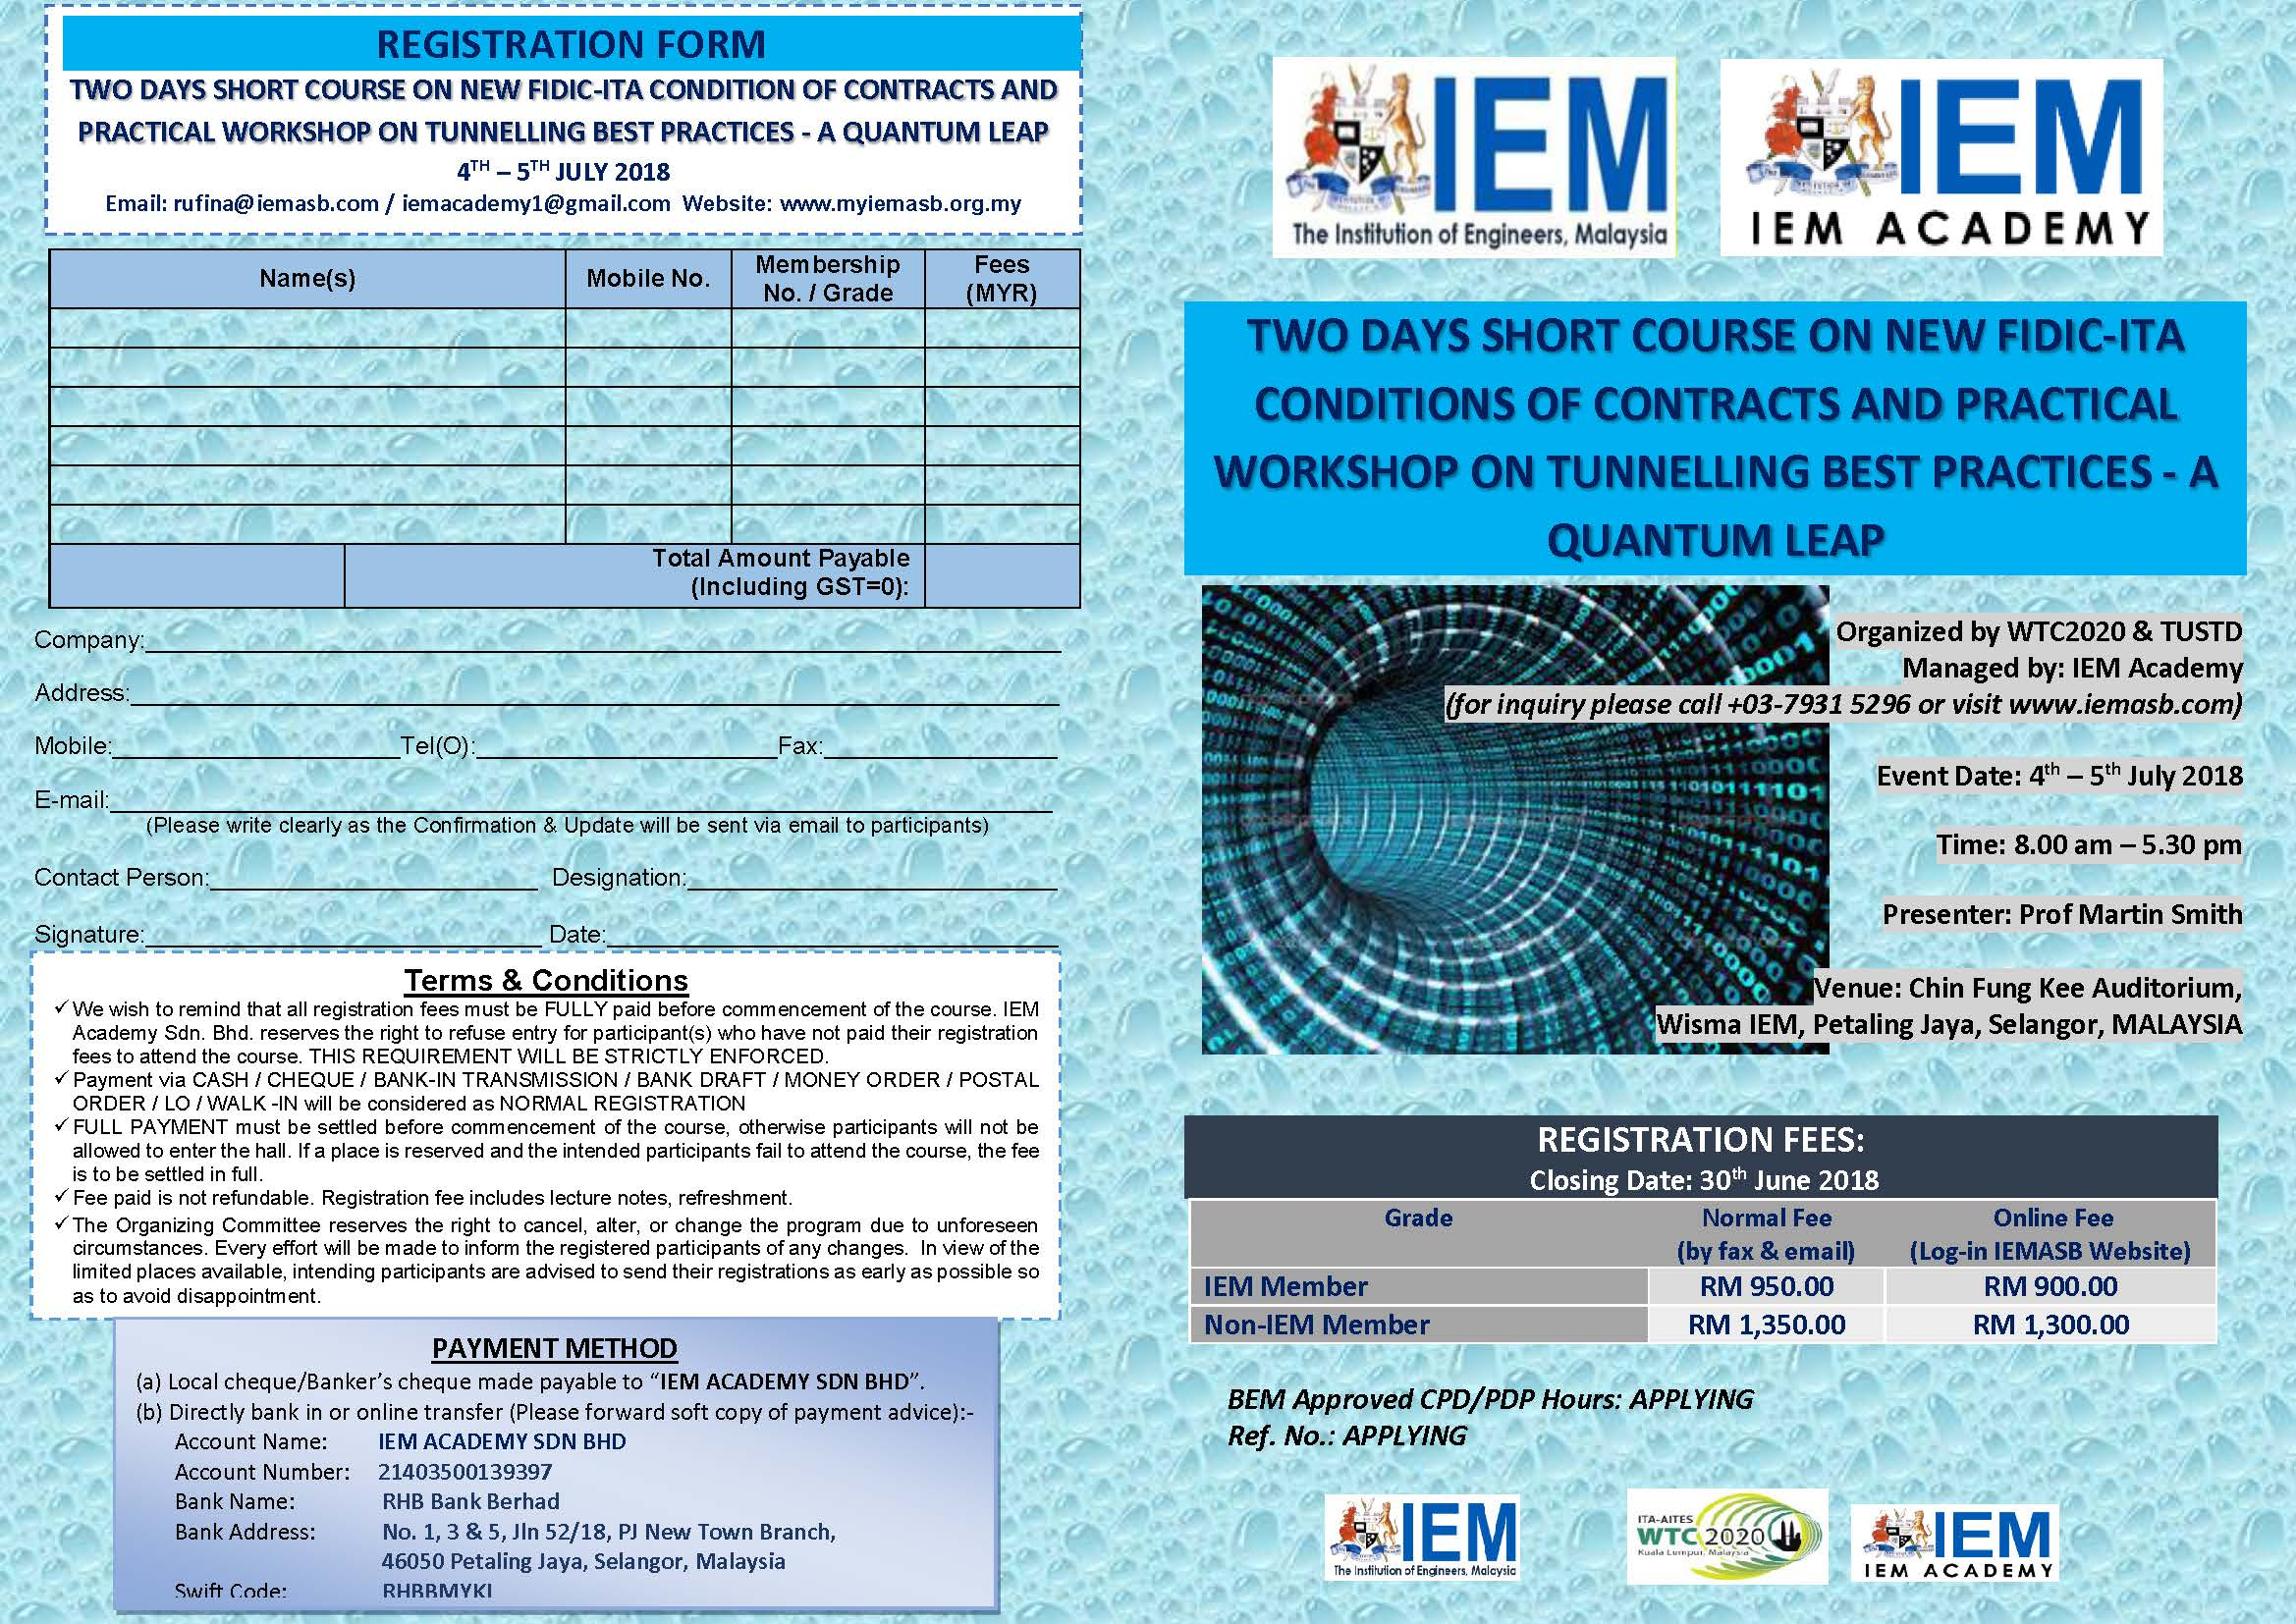 Organized by WTC2020 & TUSTD Managed by: IEM Academy (for inquiry please call +03-7931 5296 or visit www.iemasb.com) Email: rufina@iemasb.com / iemacademy1@gmail.com Website: www.myiemasb.org.my REGISTRATION FORM TWO DAYS SHORT COURSE […]